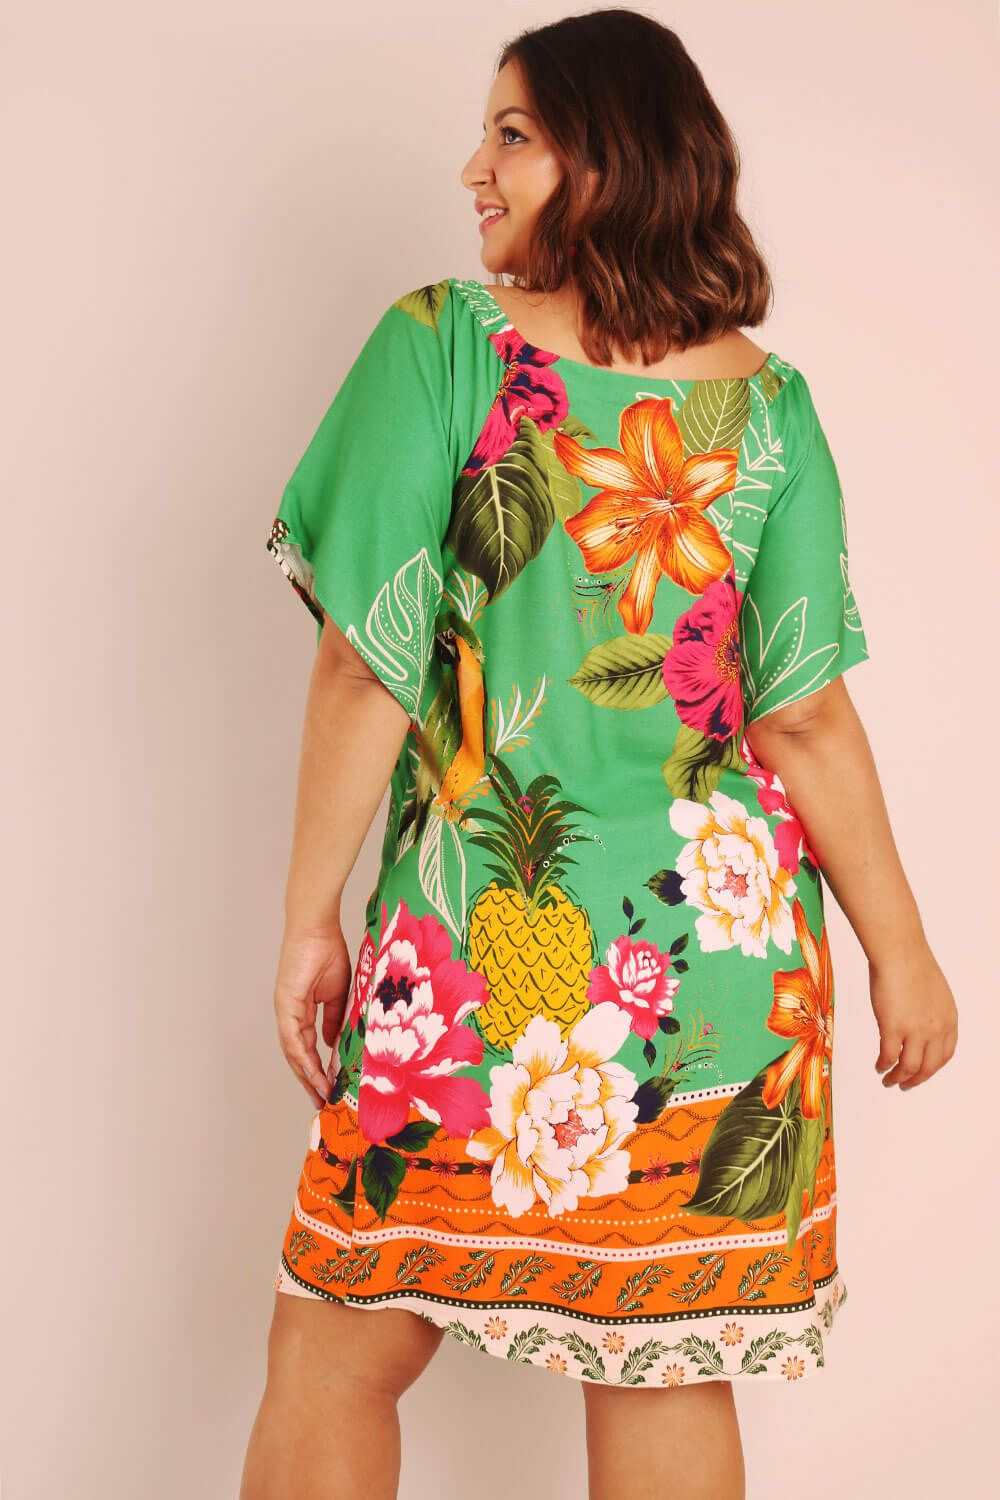 VESTIDO PLUS SIZE ESTAMPADO FESTA TROPICAL VERDE